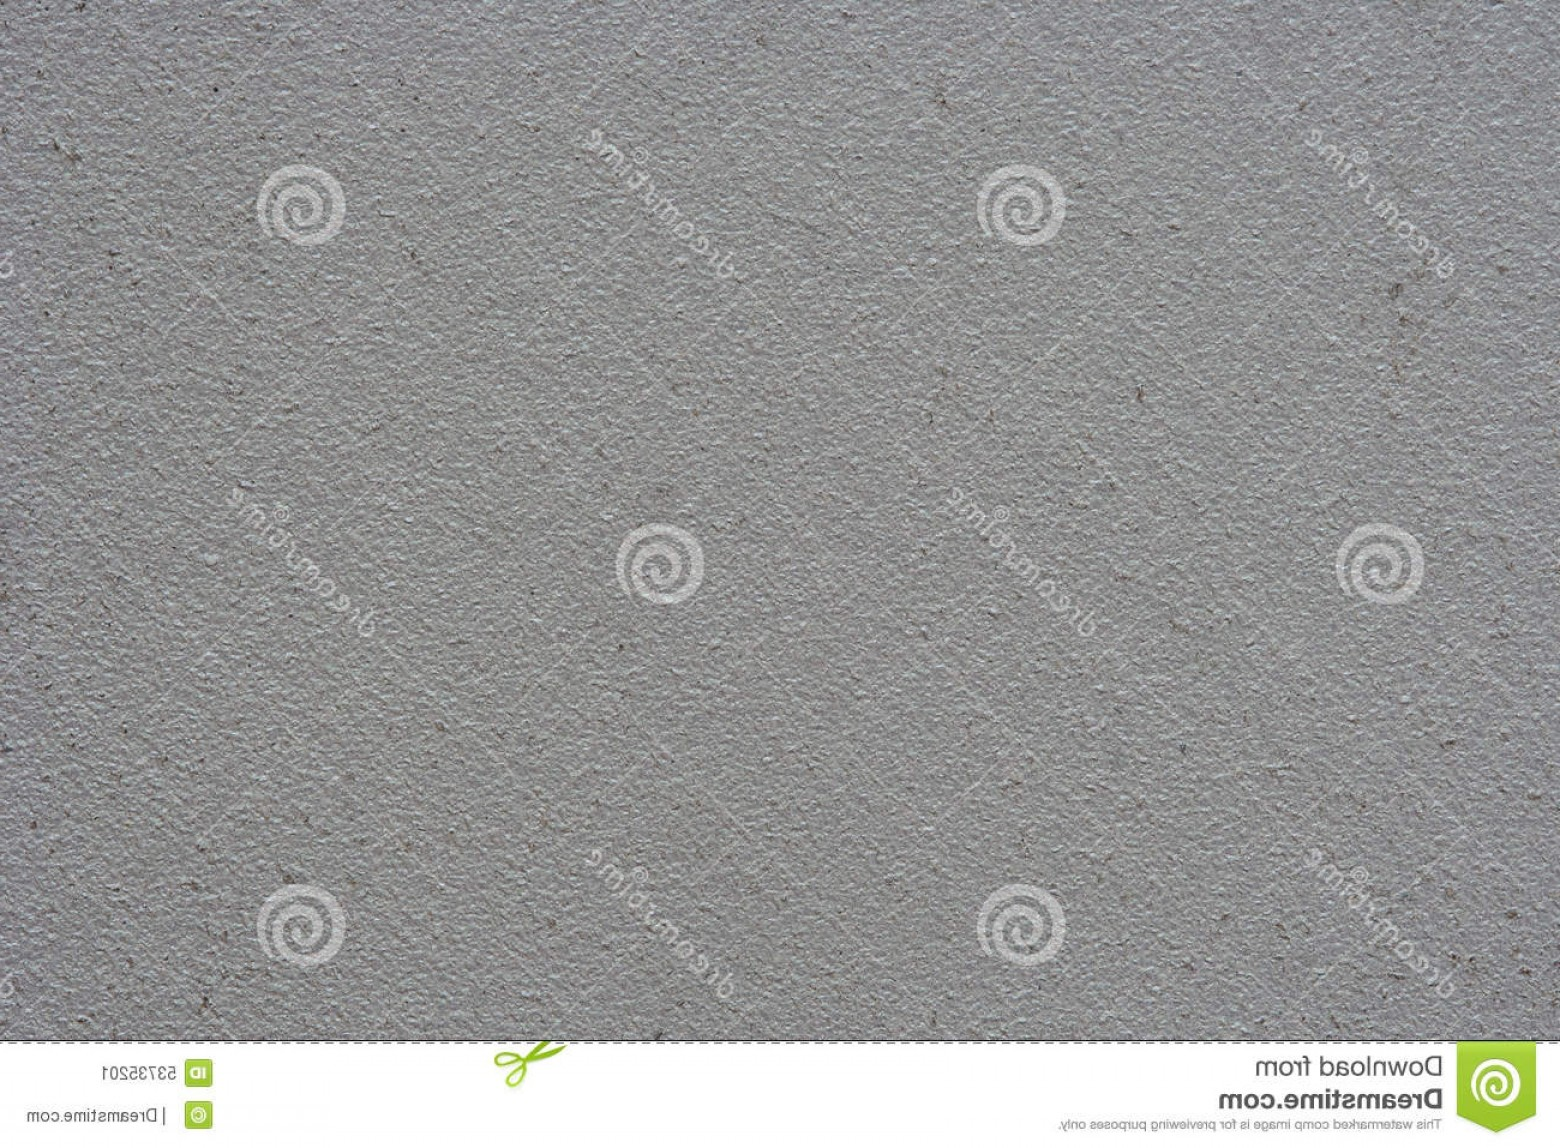 Powder Coating Vector Art: Stock Photo Powder Coating Coated Steel Surface Grey Image